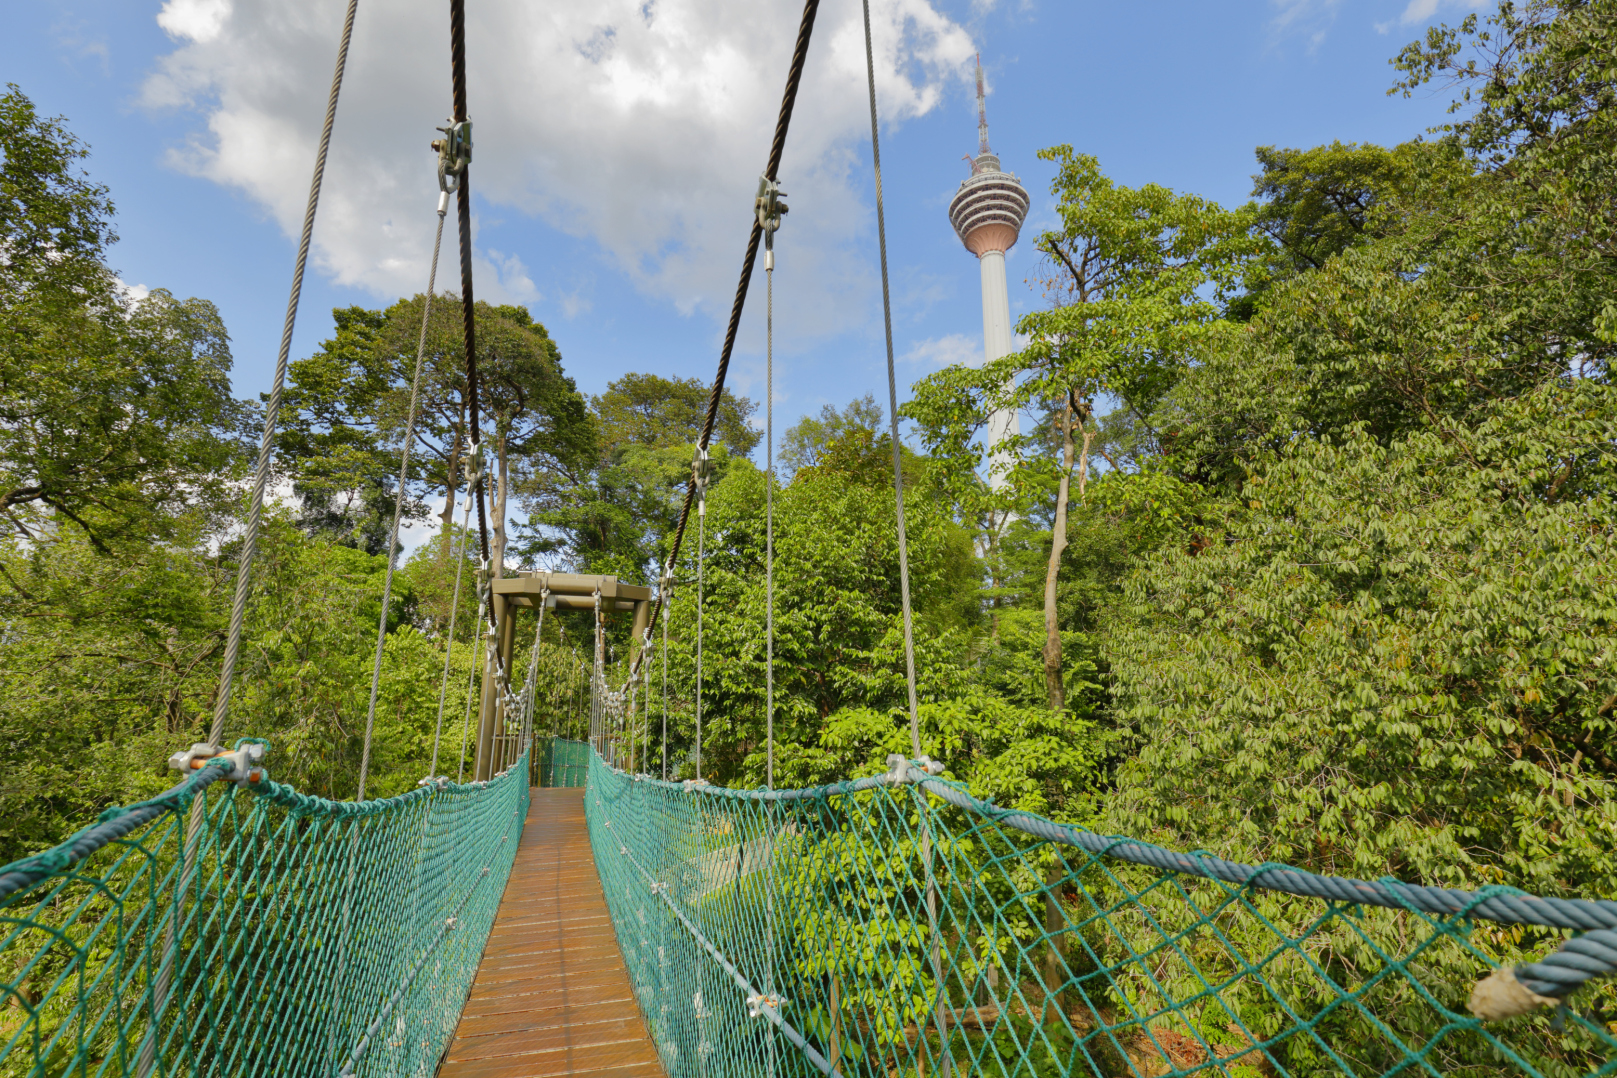 Kl Forest Eco Park Kuala Lumpur Malaysia Attractions